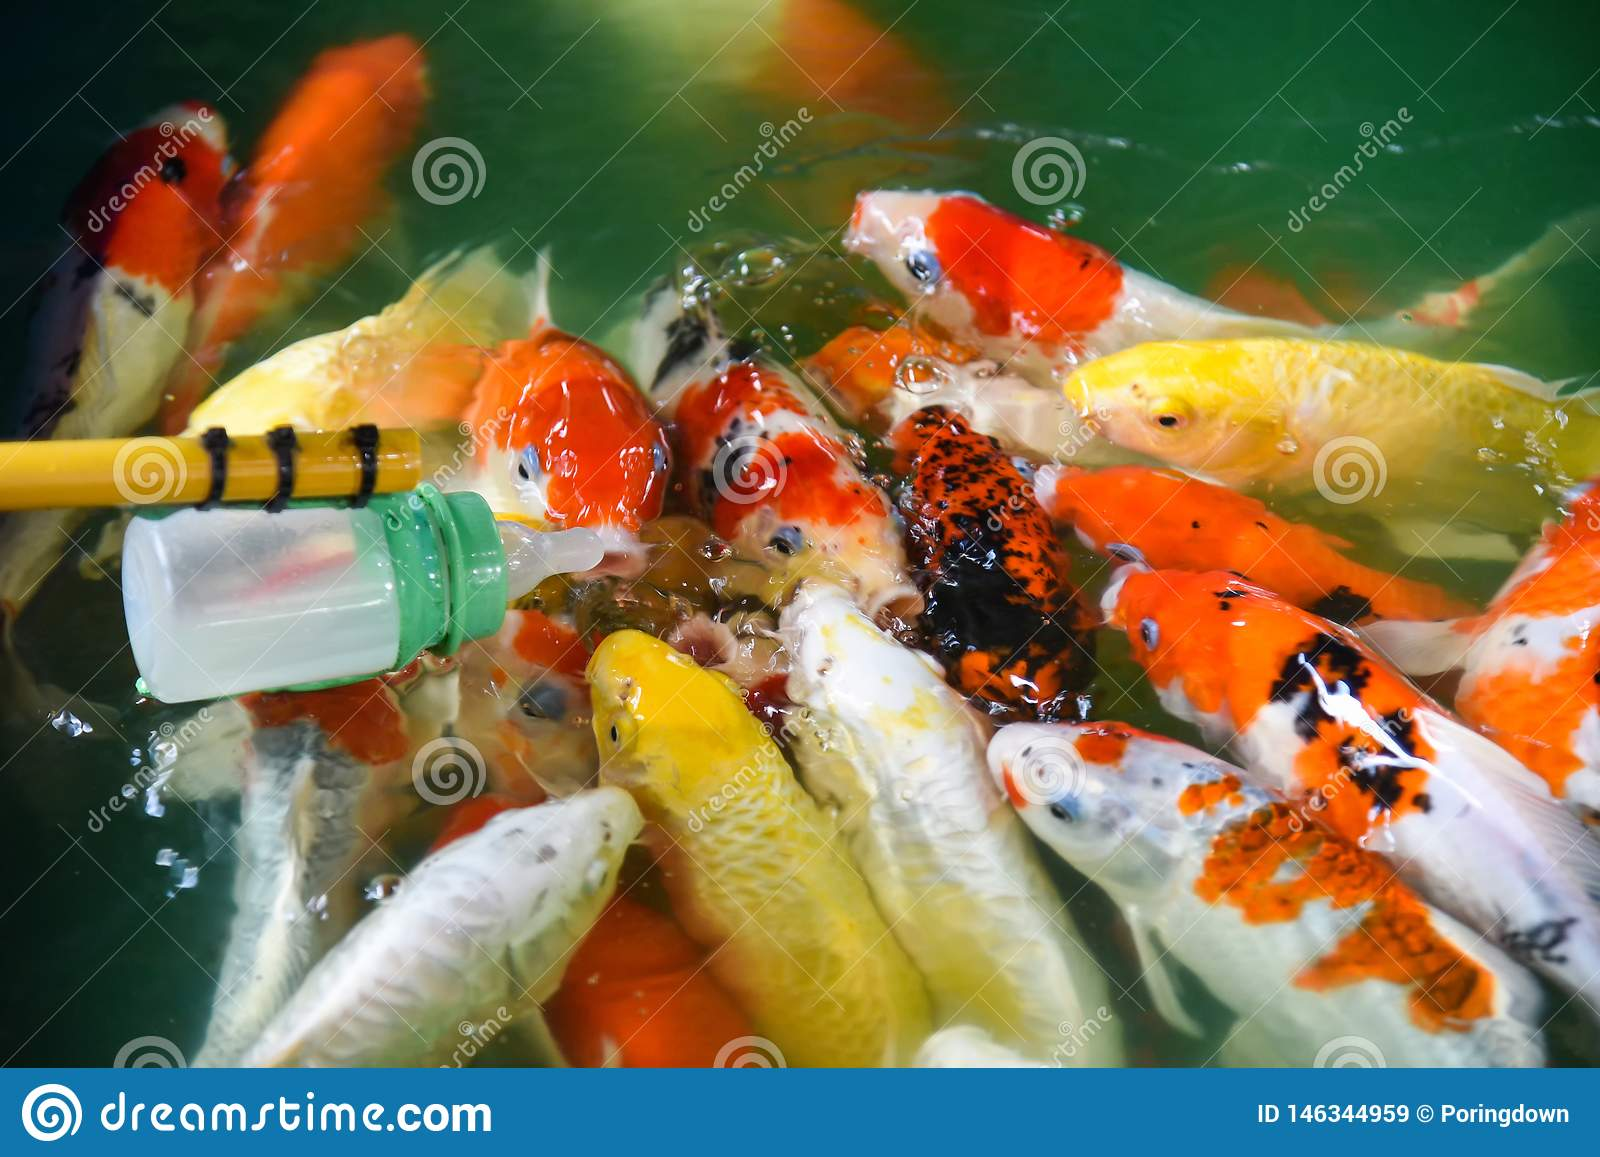 feeding fish carp with